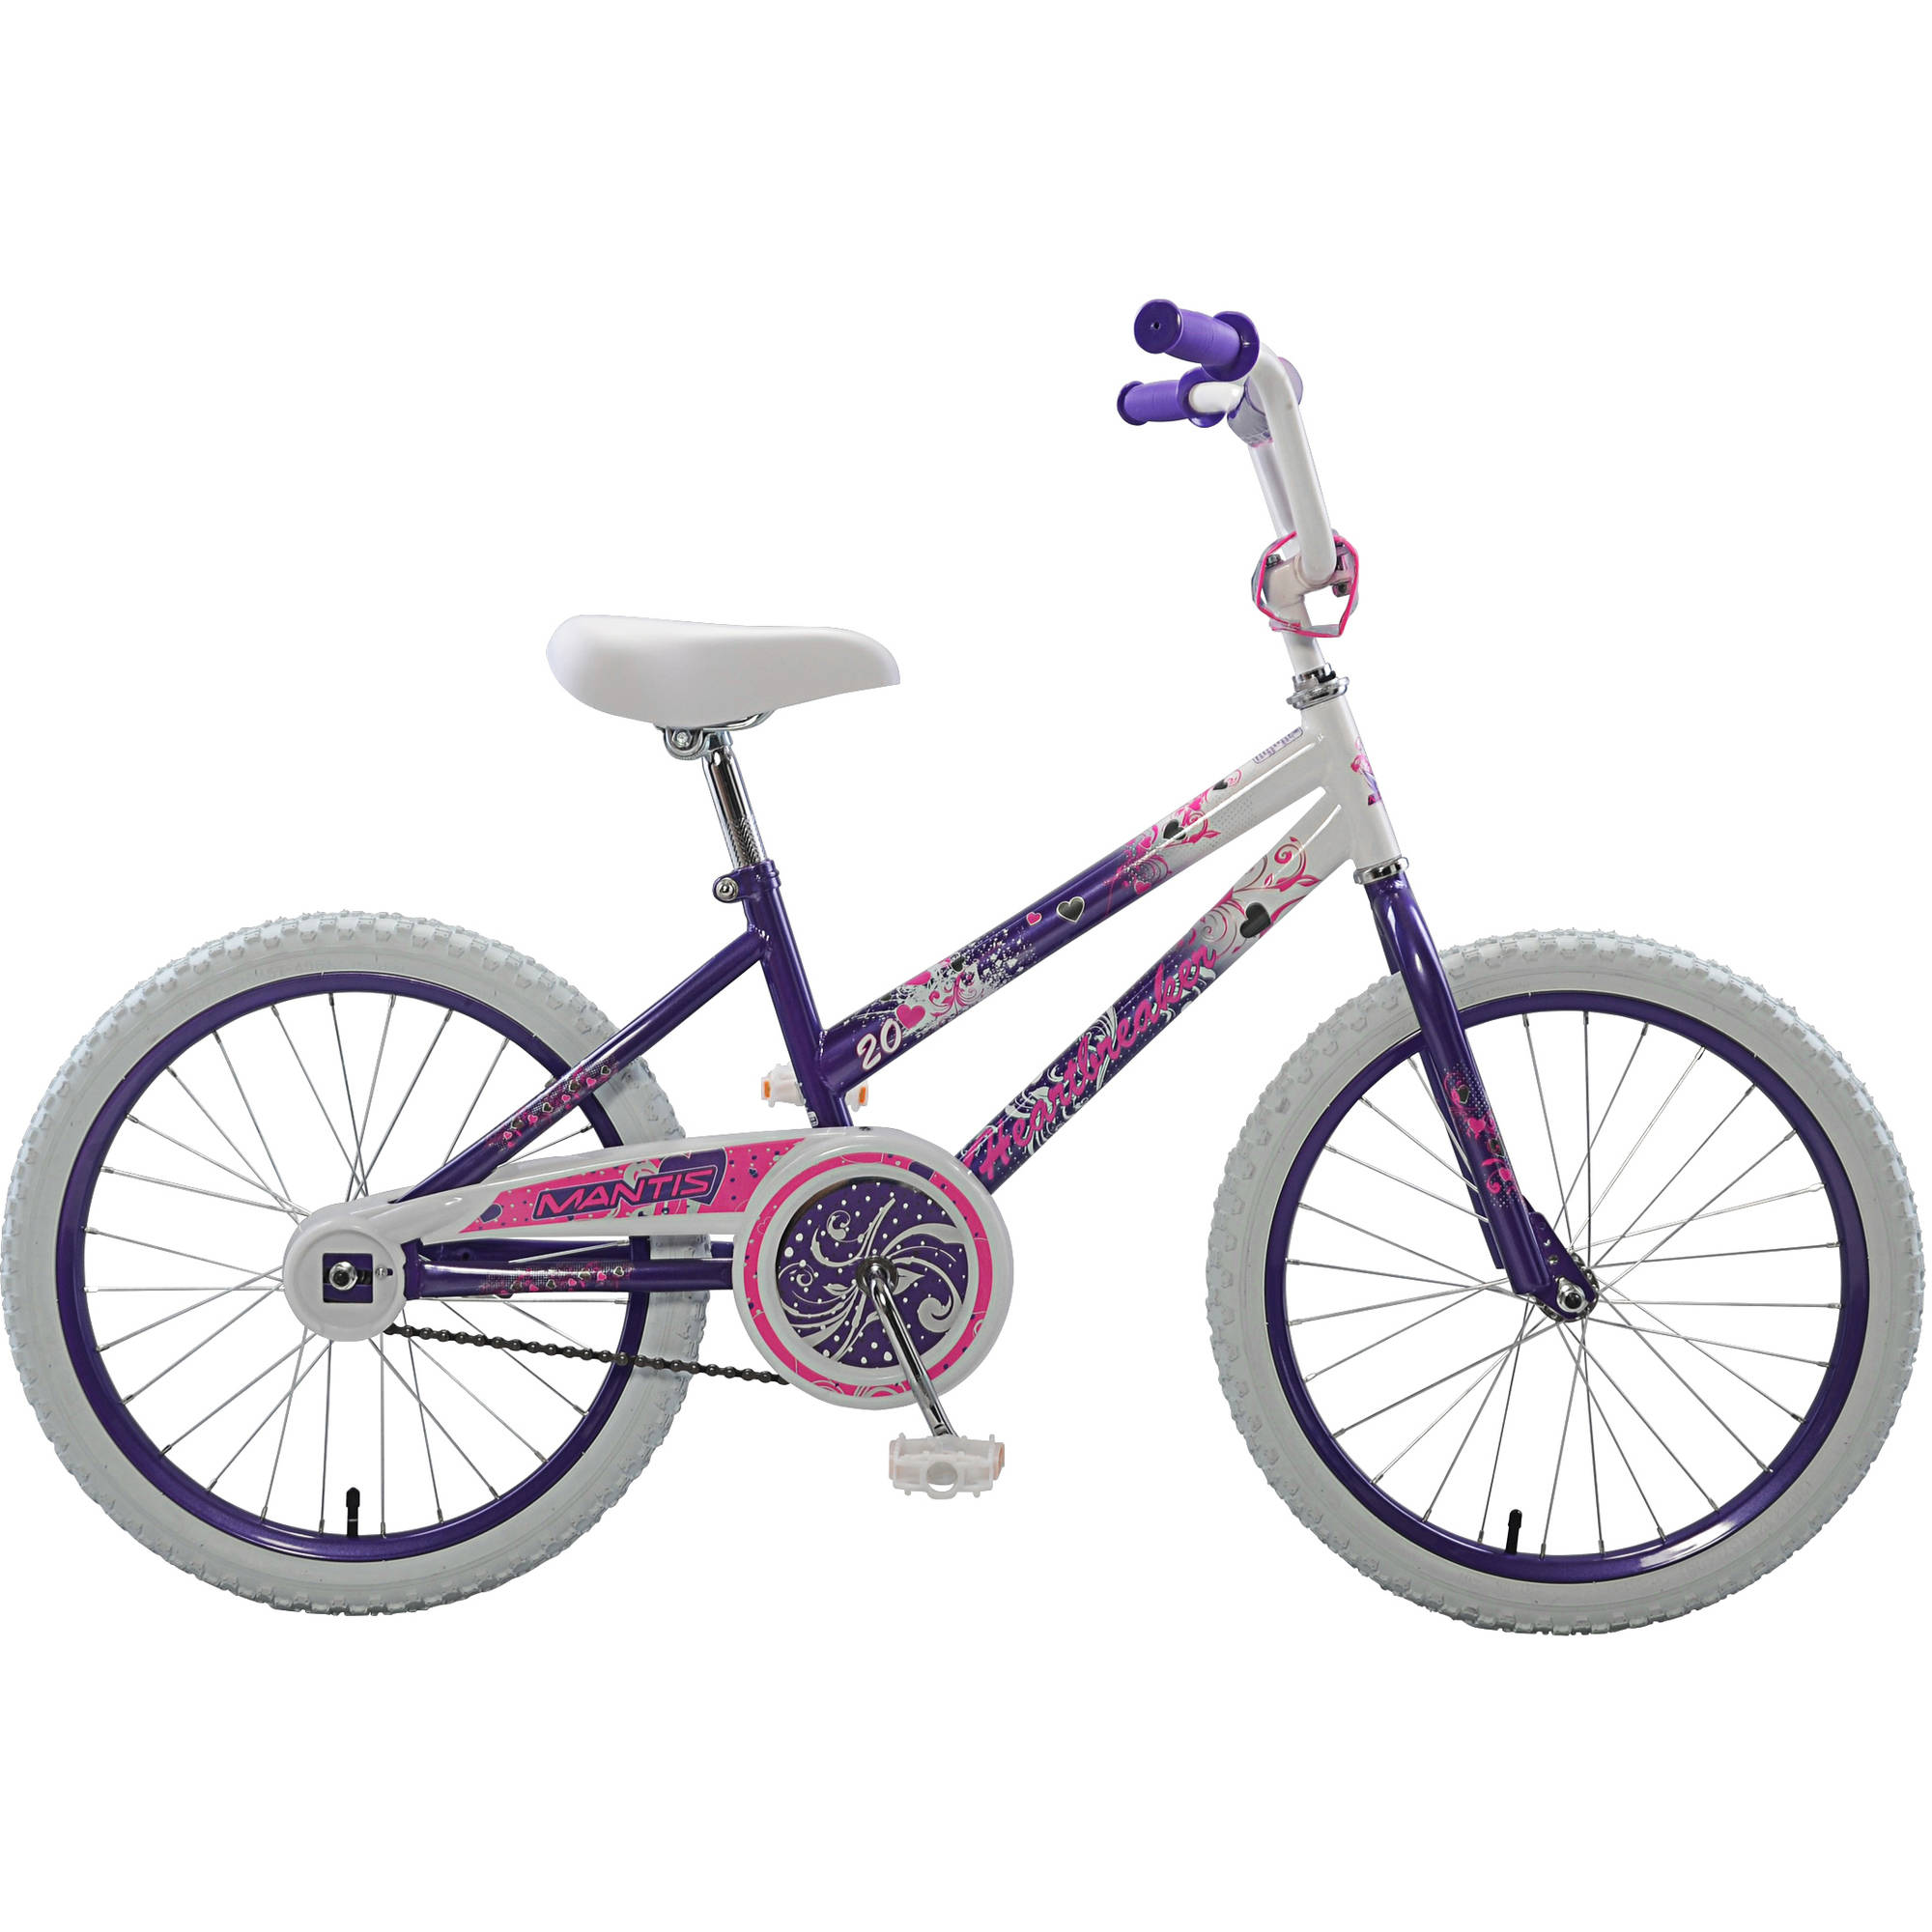 Mantis Heartbreaker 20 Kids Bicycle